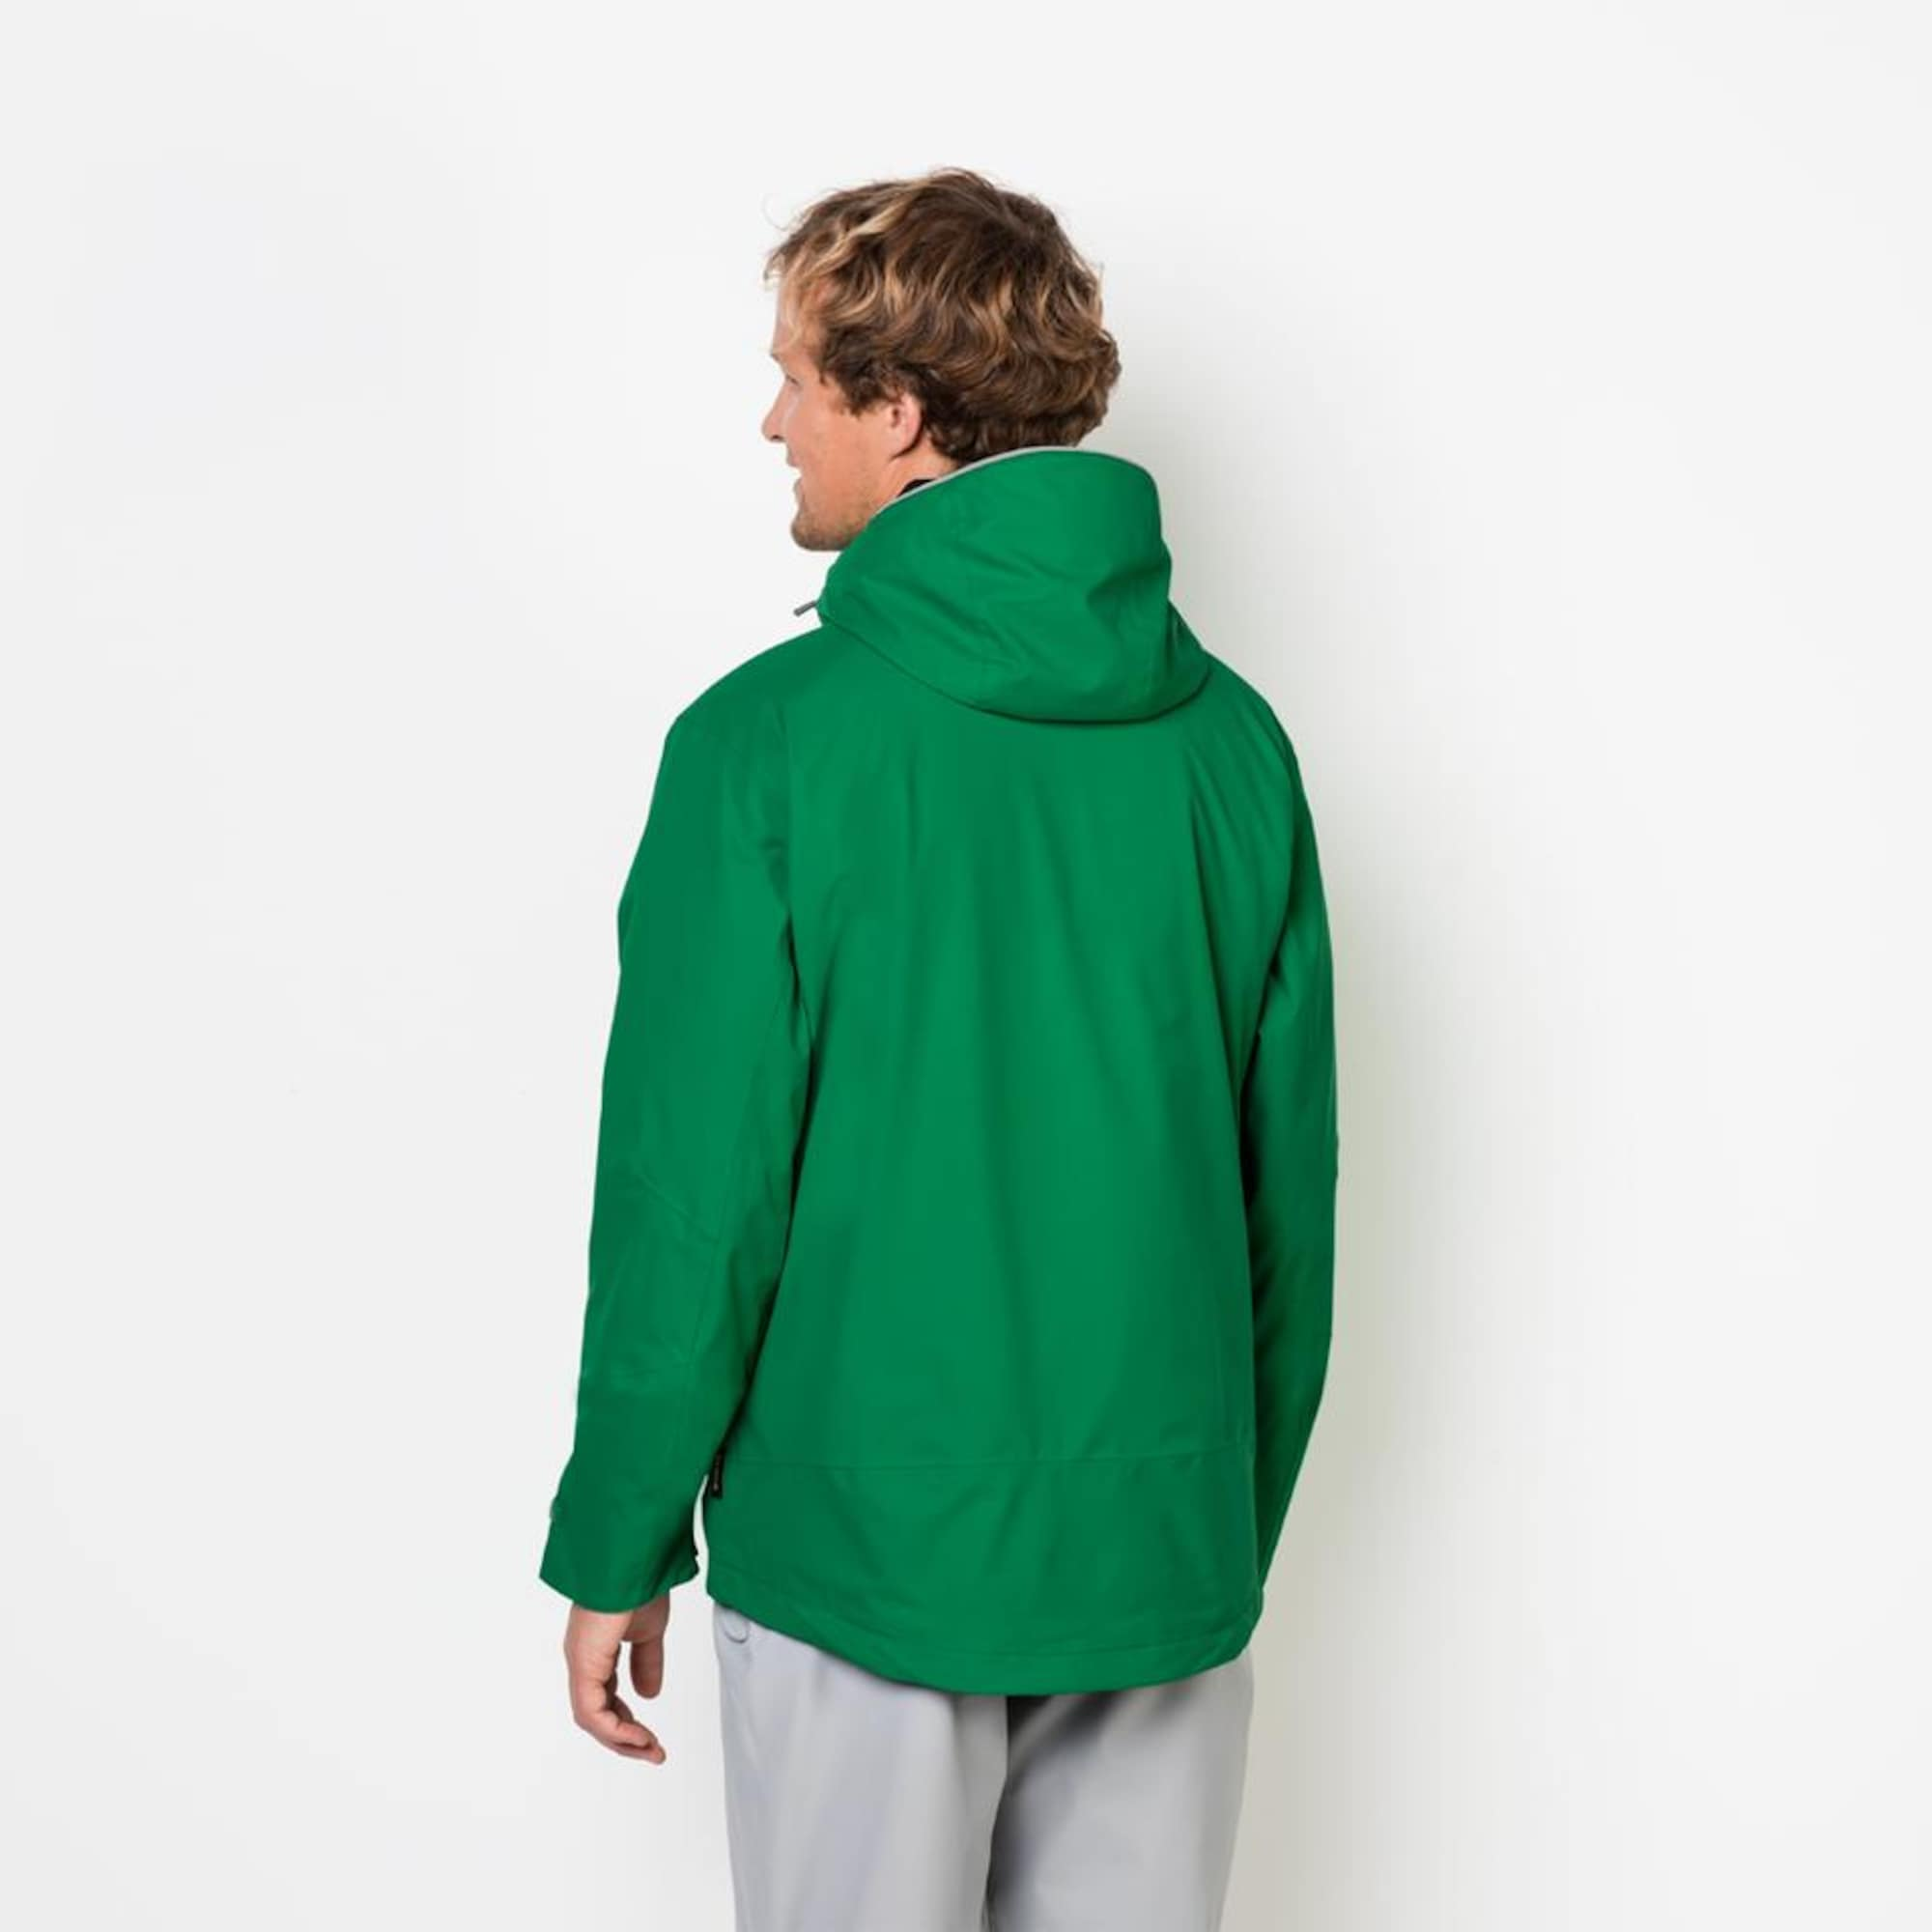 Image of 3-in-1-Funktionsjacke ´VERMILLION PASS´